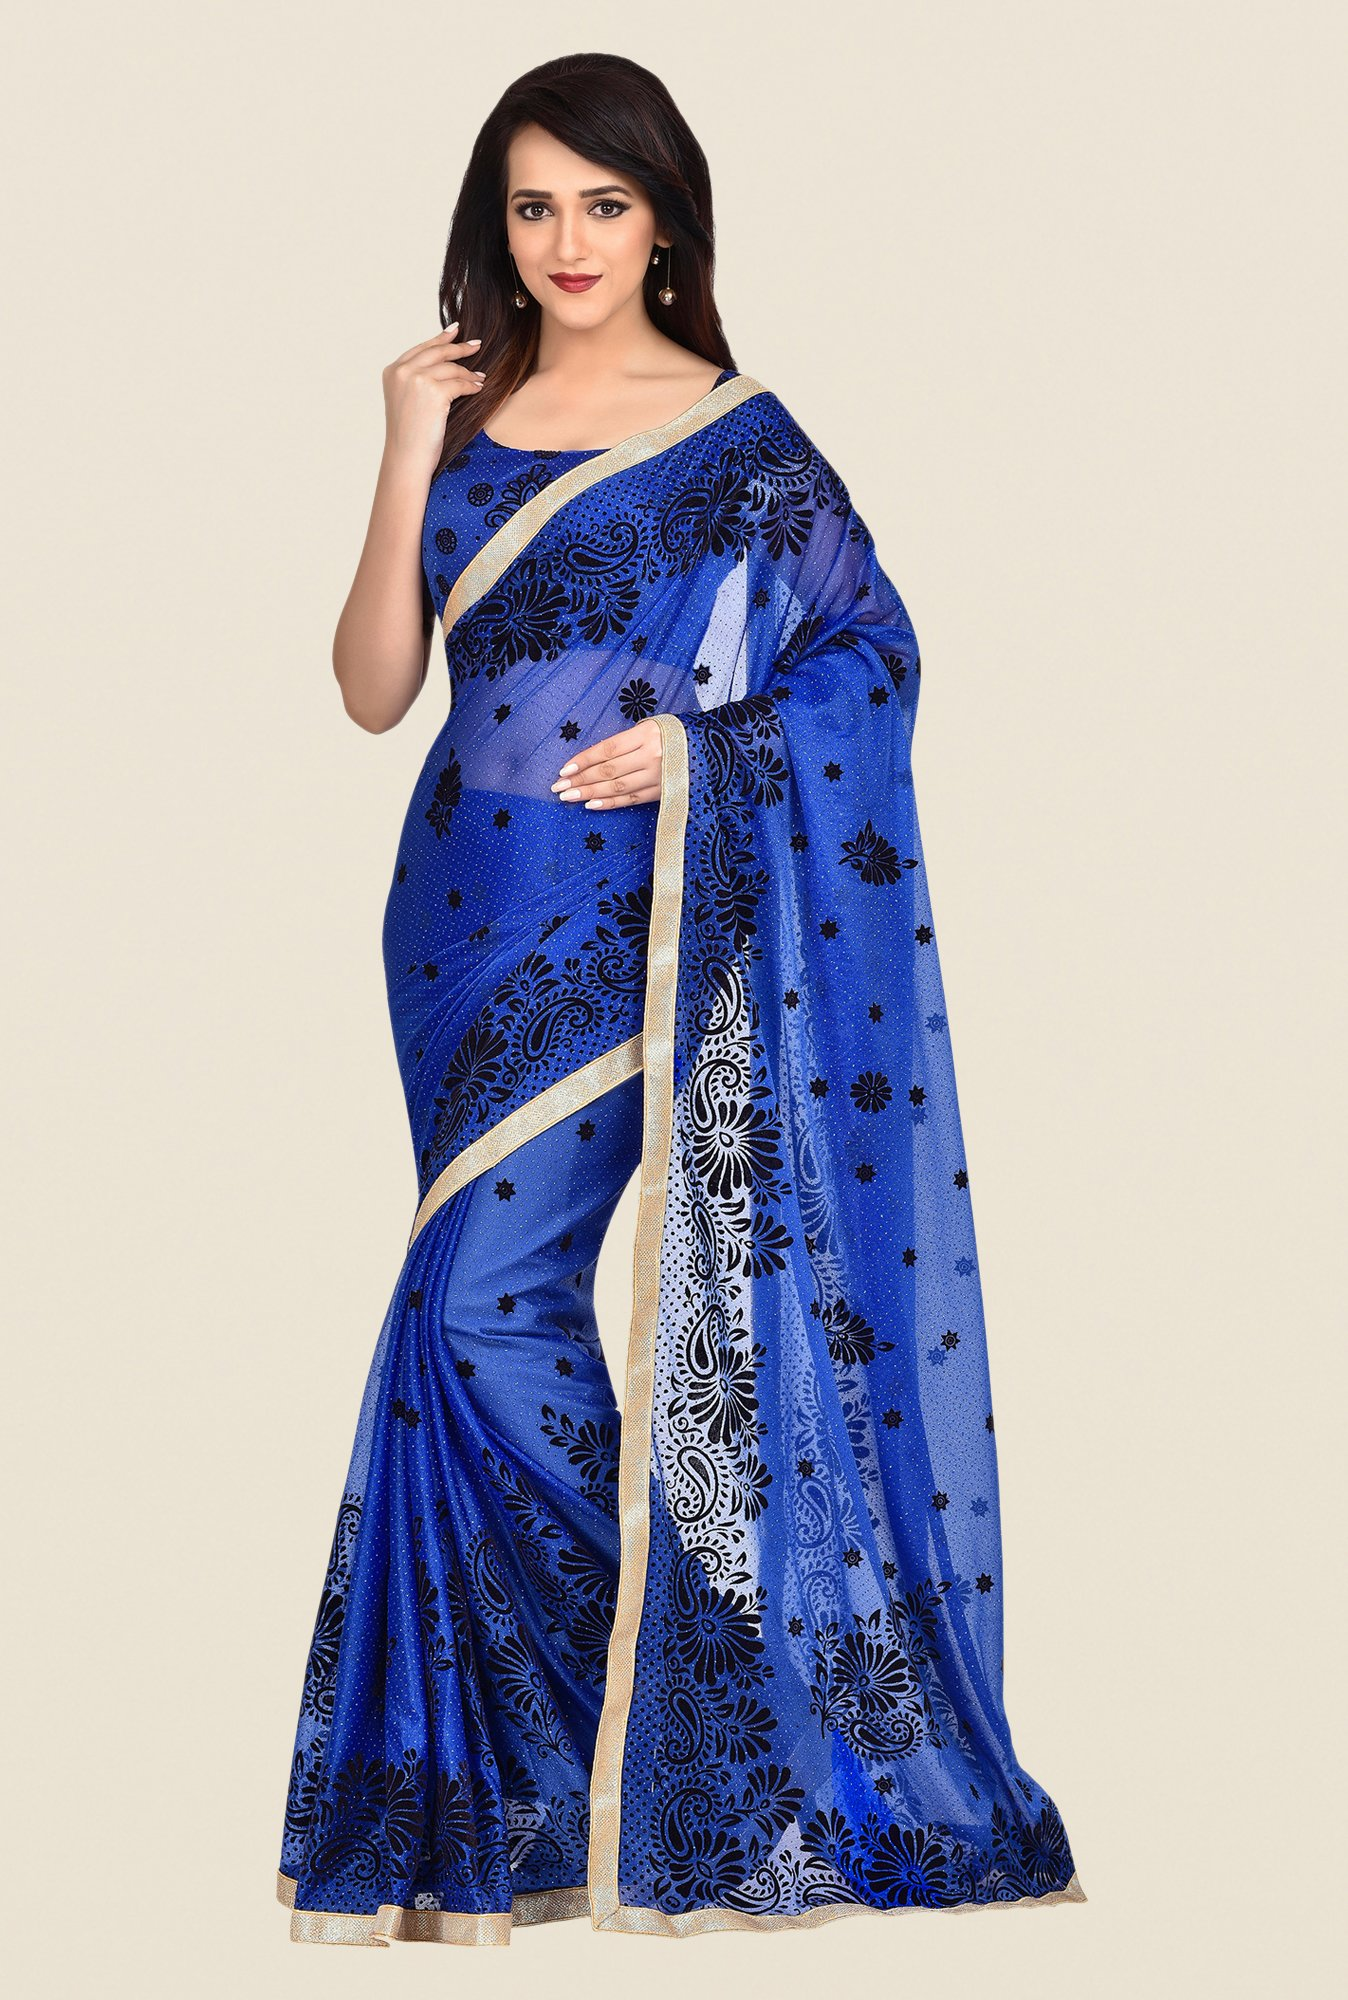 Shonaya Blue Lycra Saree